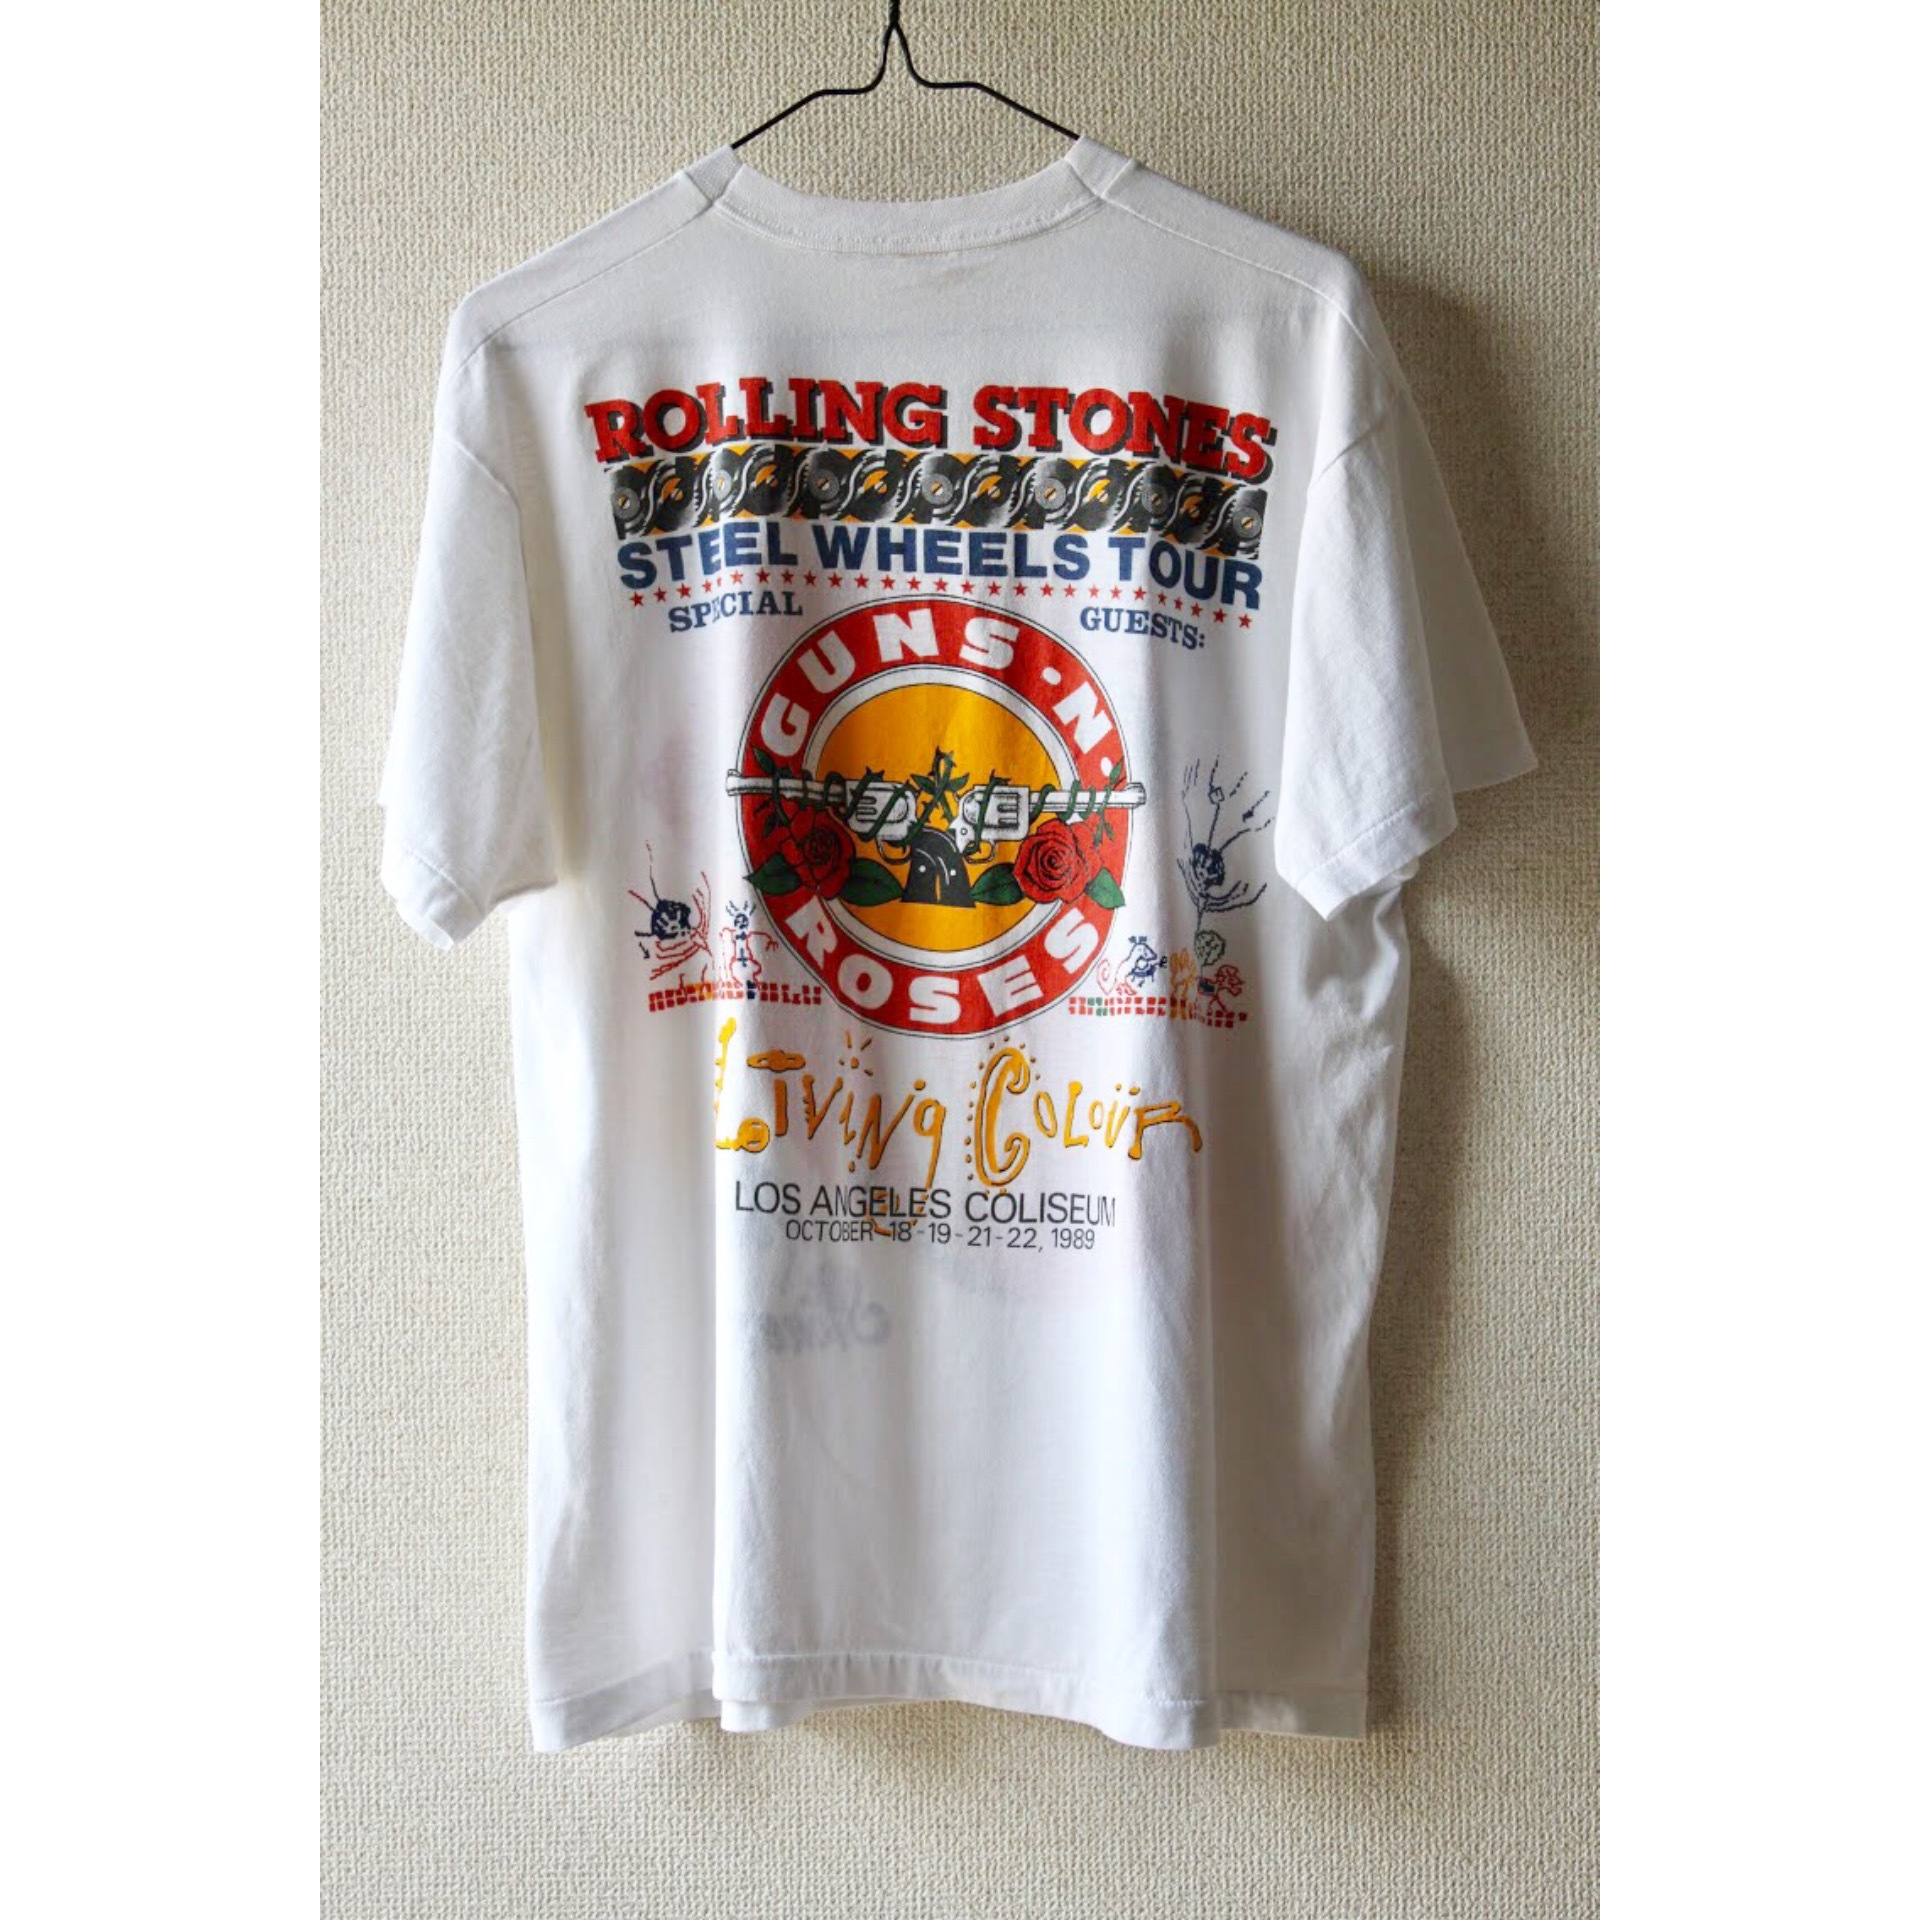 Vintage The Rolling Stones t shirt